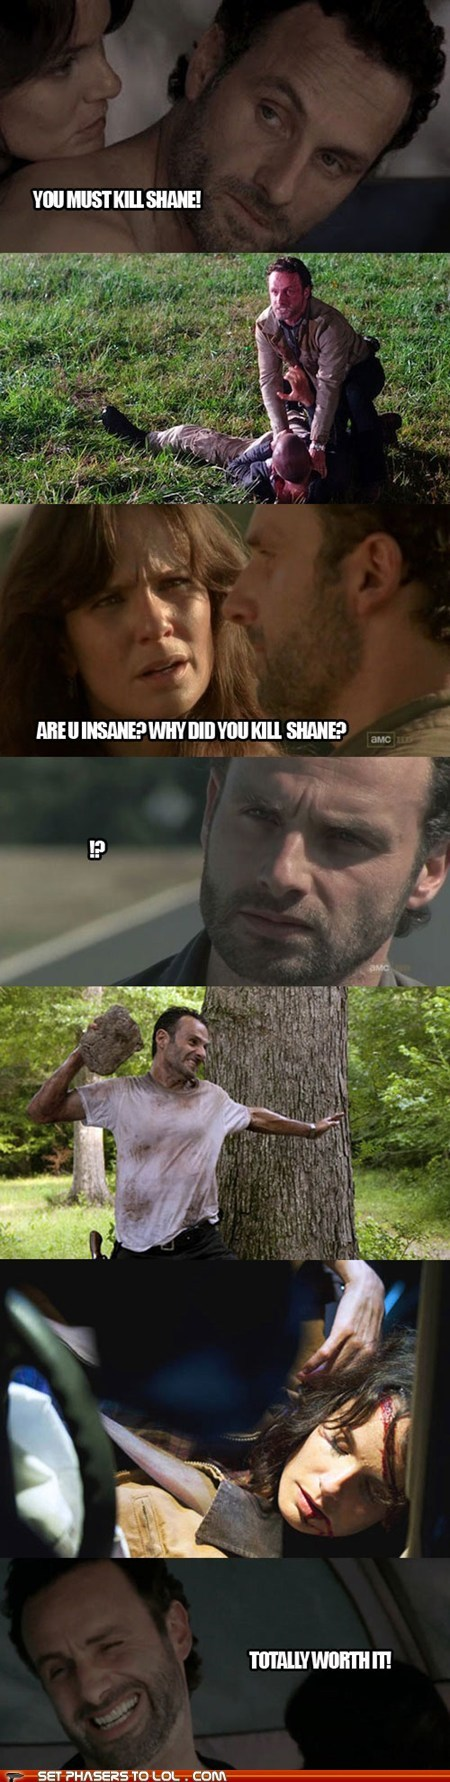 Walking Dead - Season Three? Please?